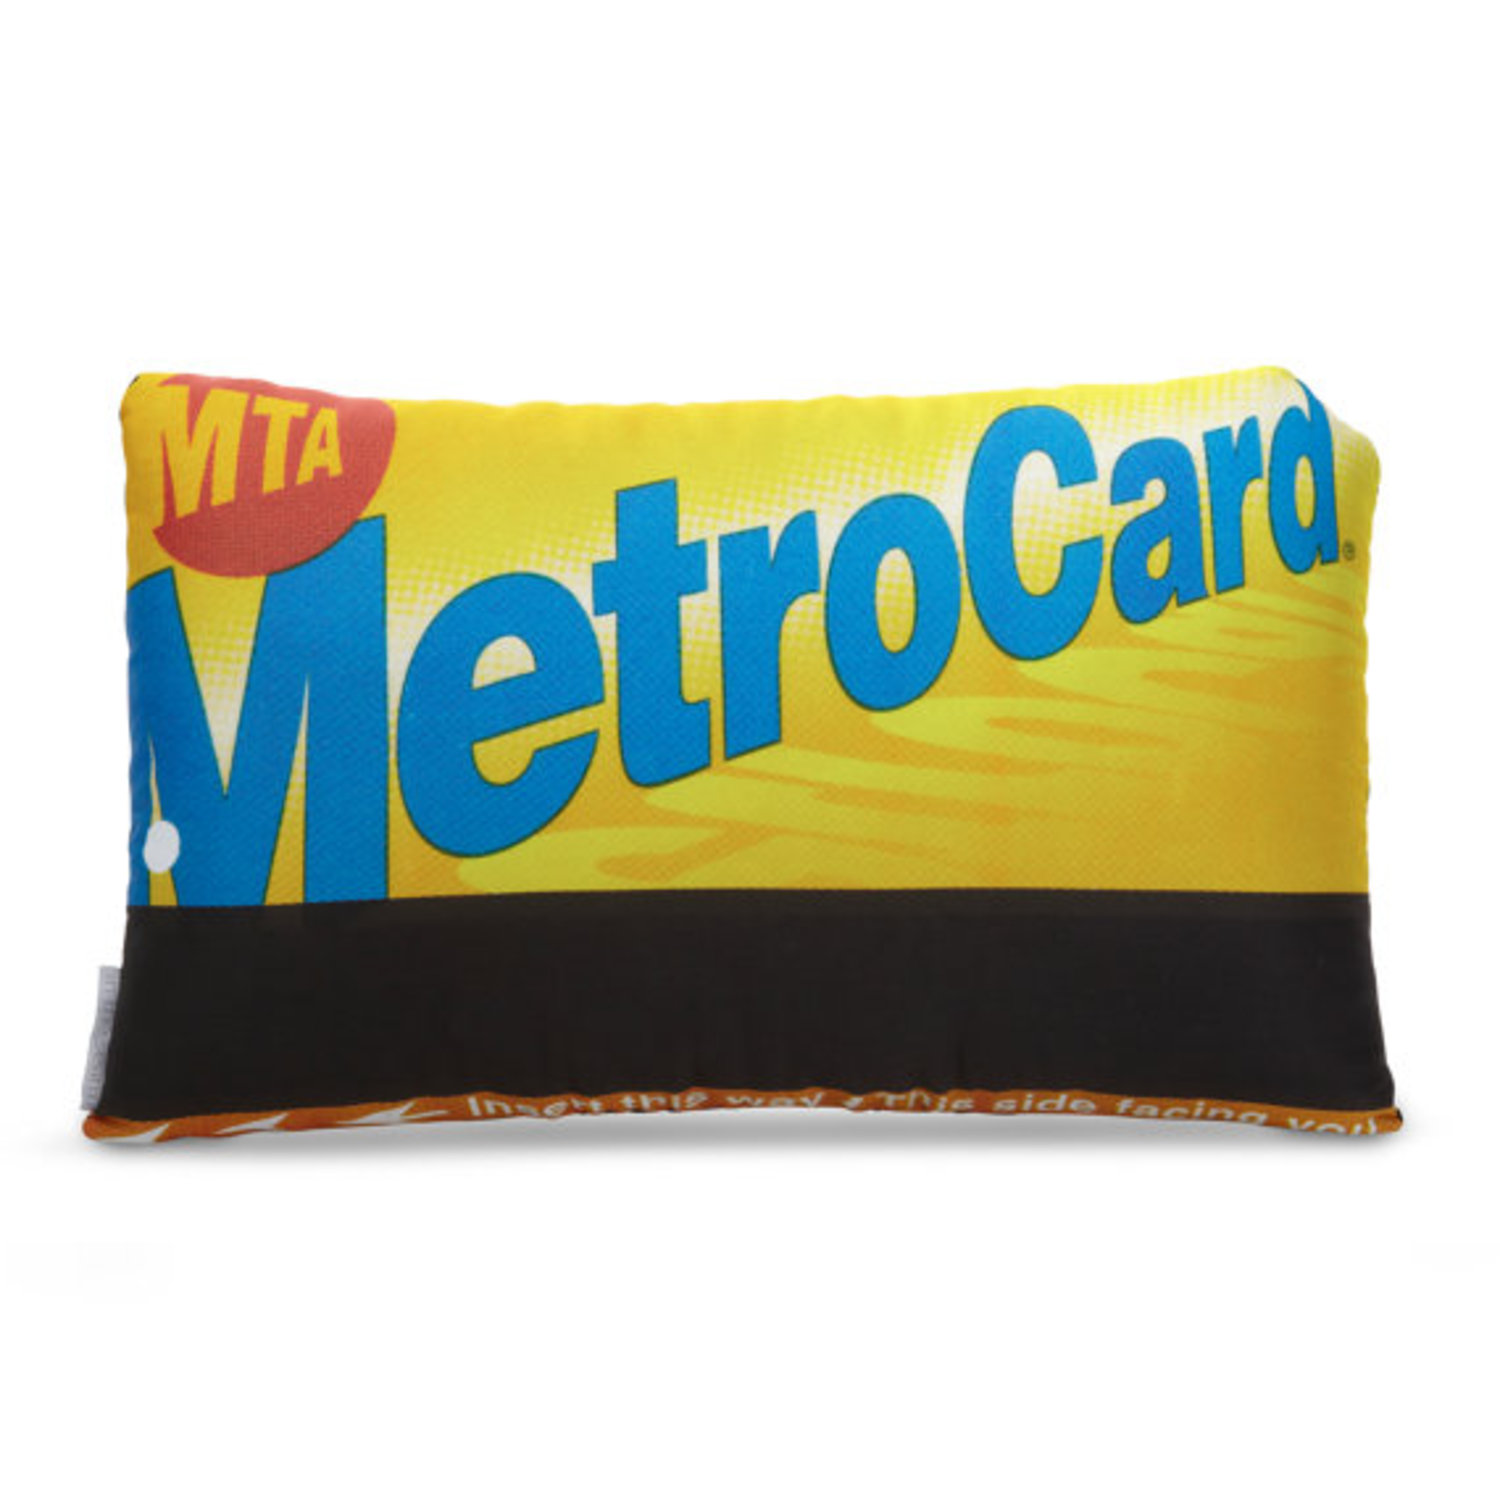 Officially Licensed NYC Metro Card Printed Pillow